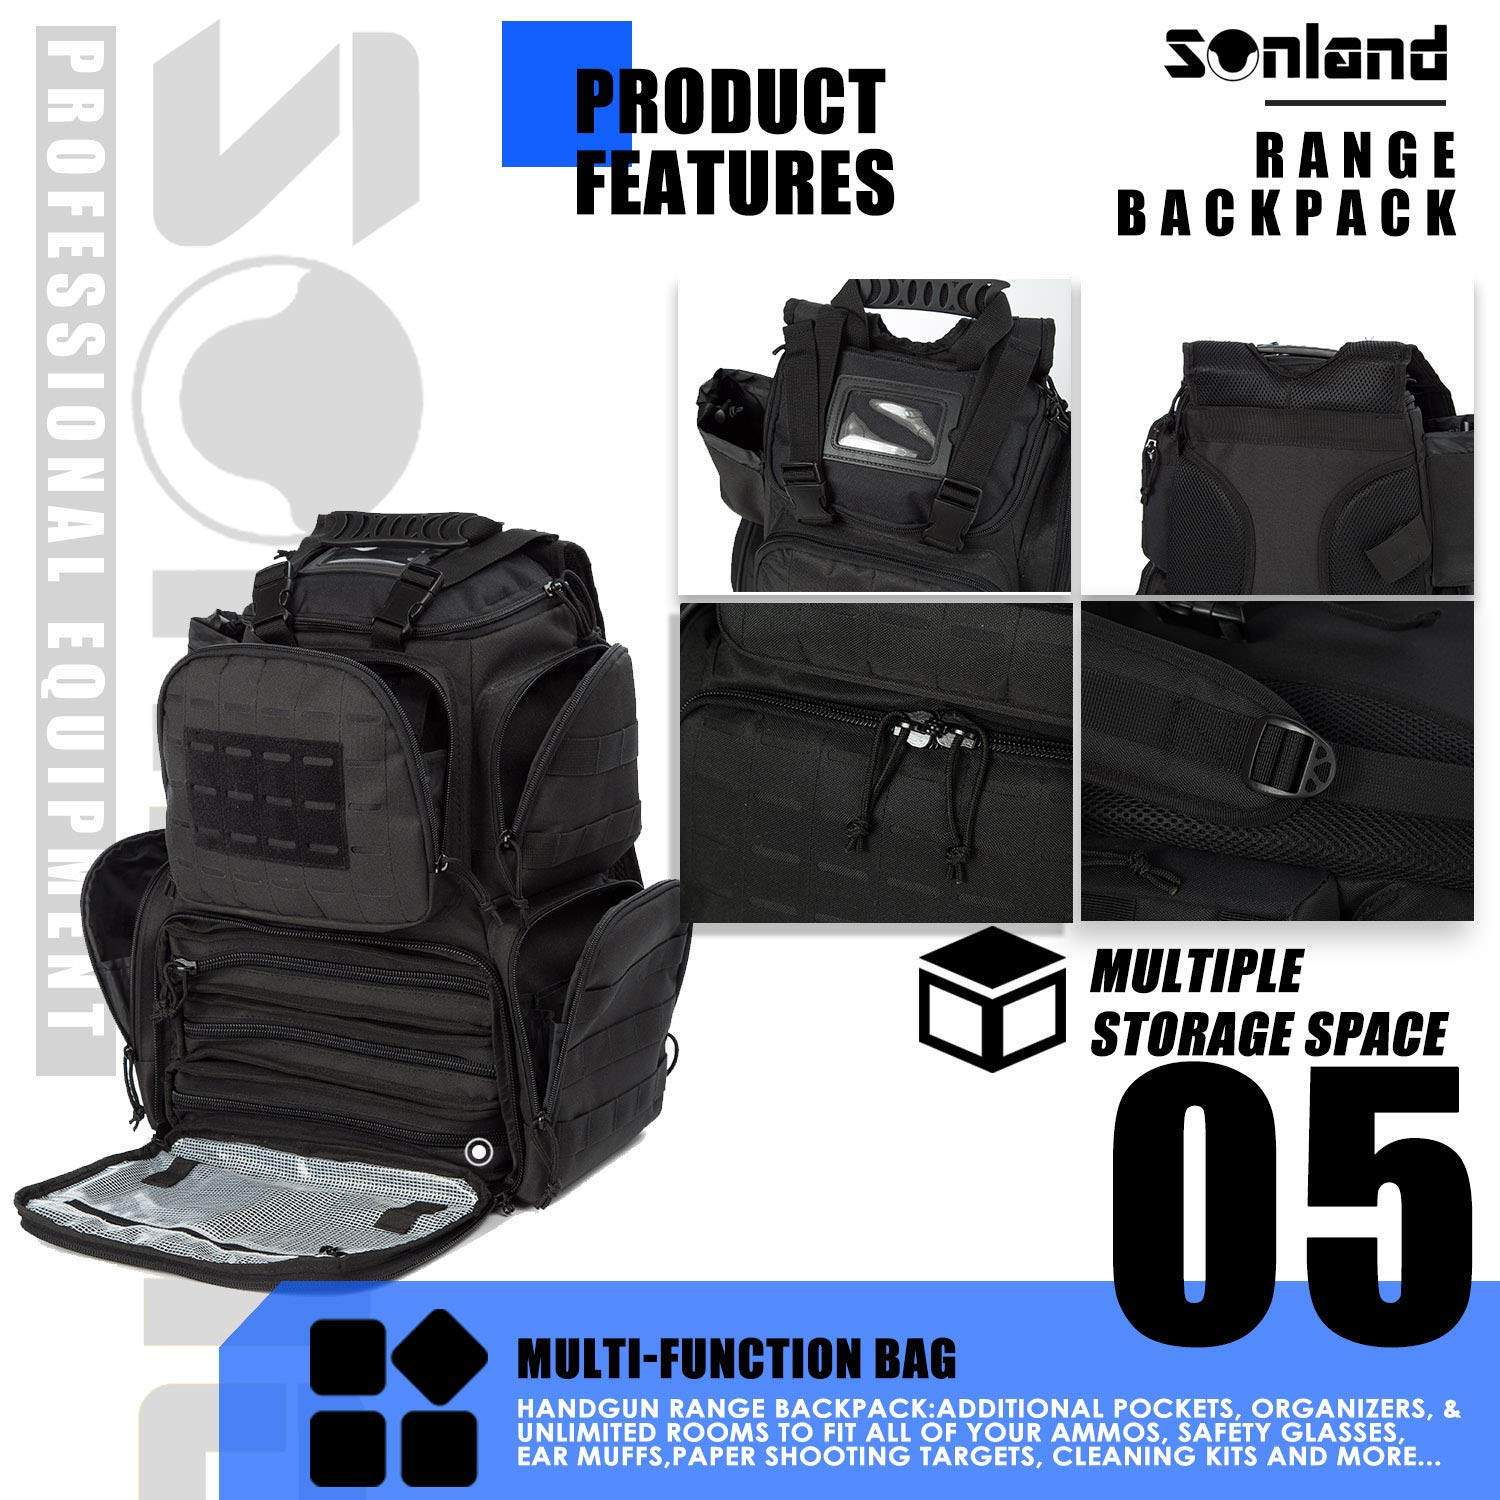 SUNLAND Range Bag Backpack,Gun Backpack with 3-Pistol Case and Protective Rain Cover,Tactical molle System & Lockable zippers-18'' x 14'' x 8'' (Blk) by SUNLAND (Image #6)